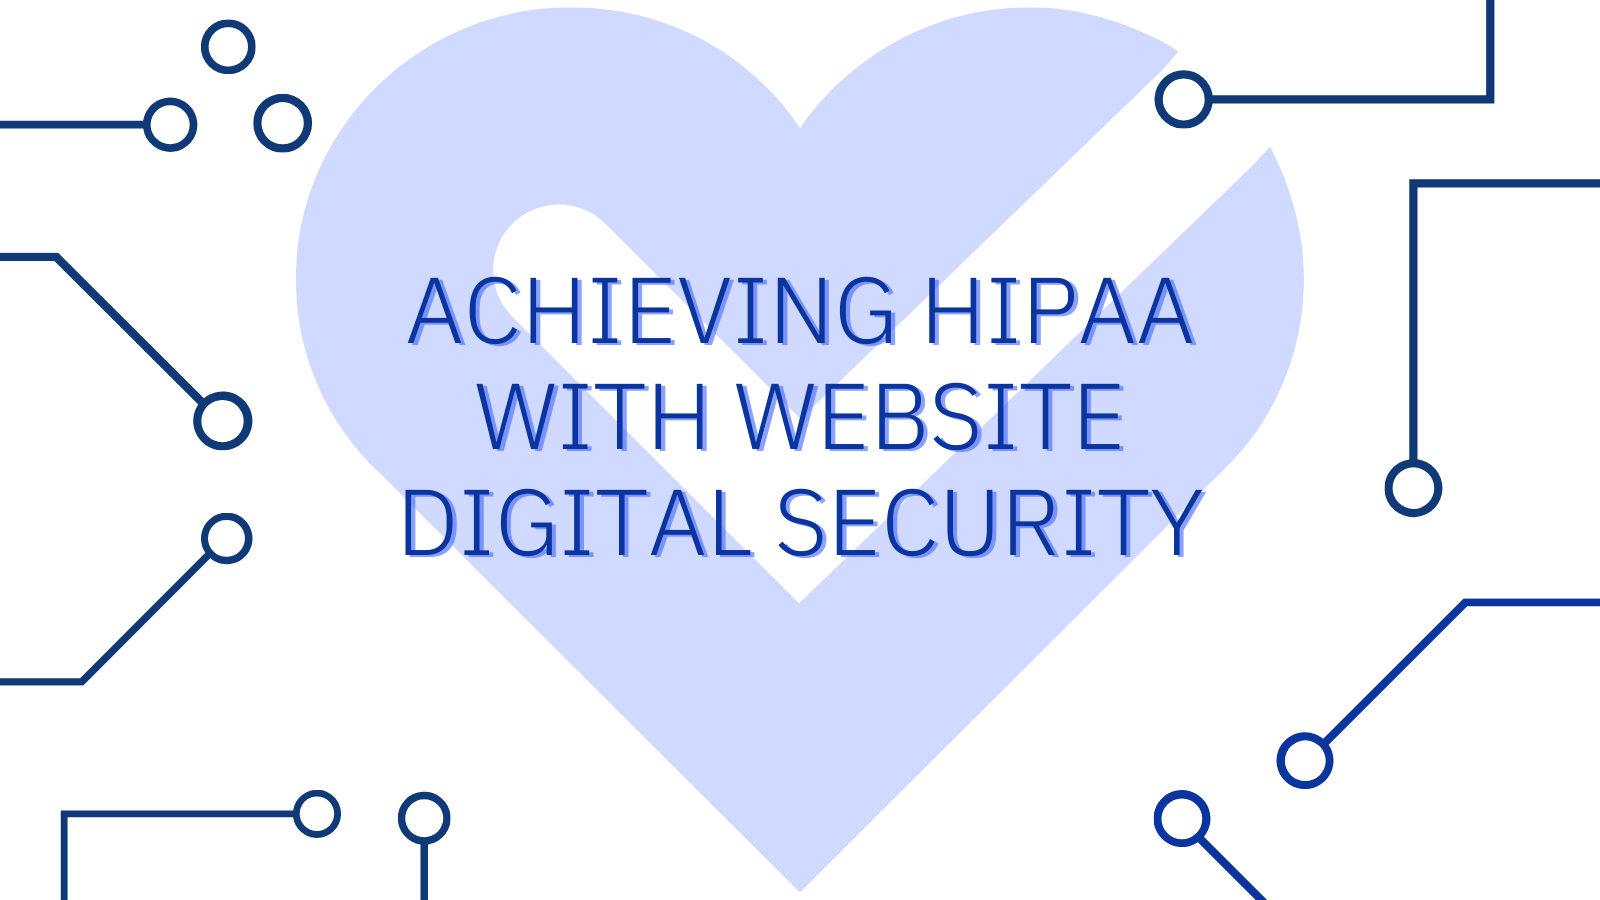 Achieving HIPAA With Website Digital Security